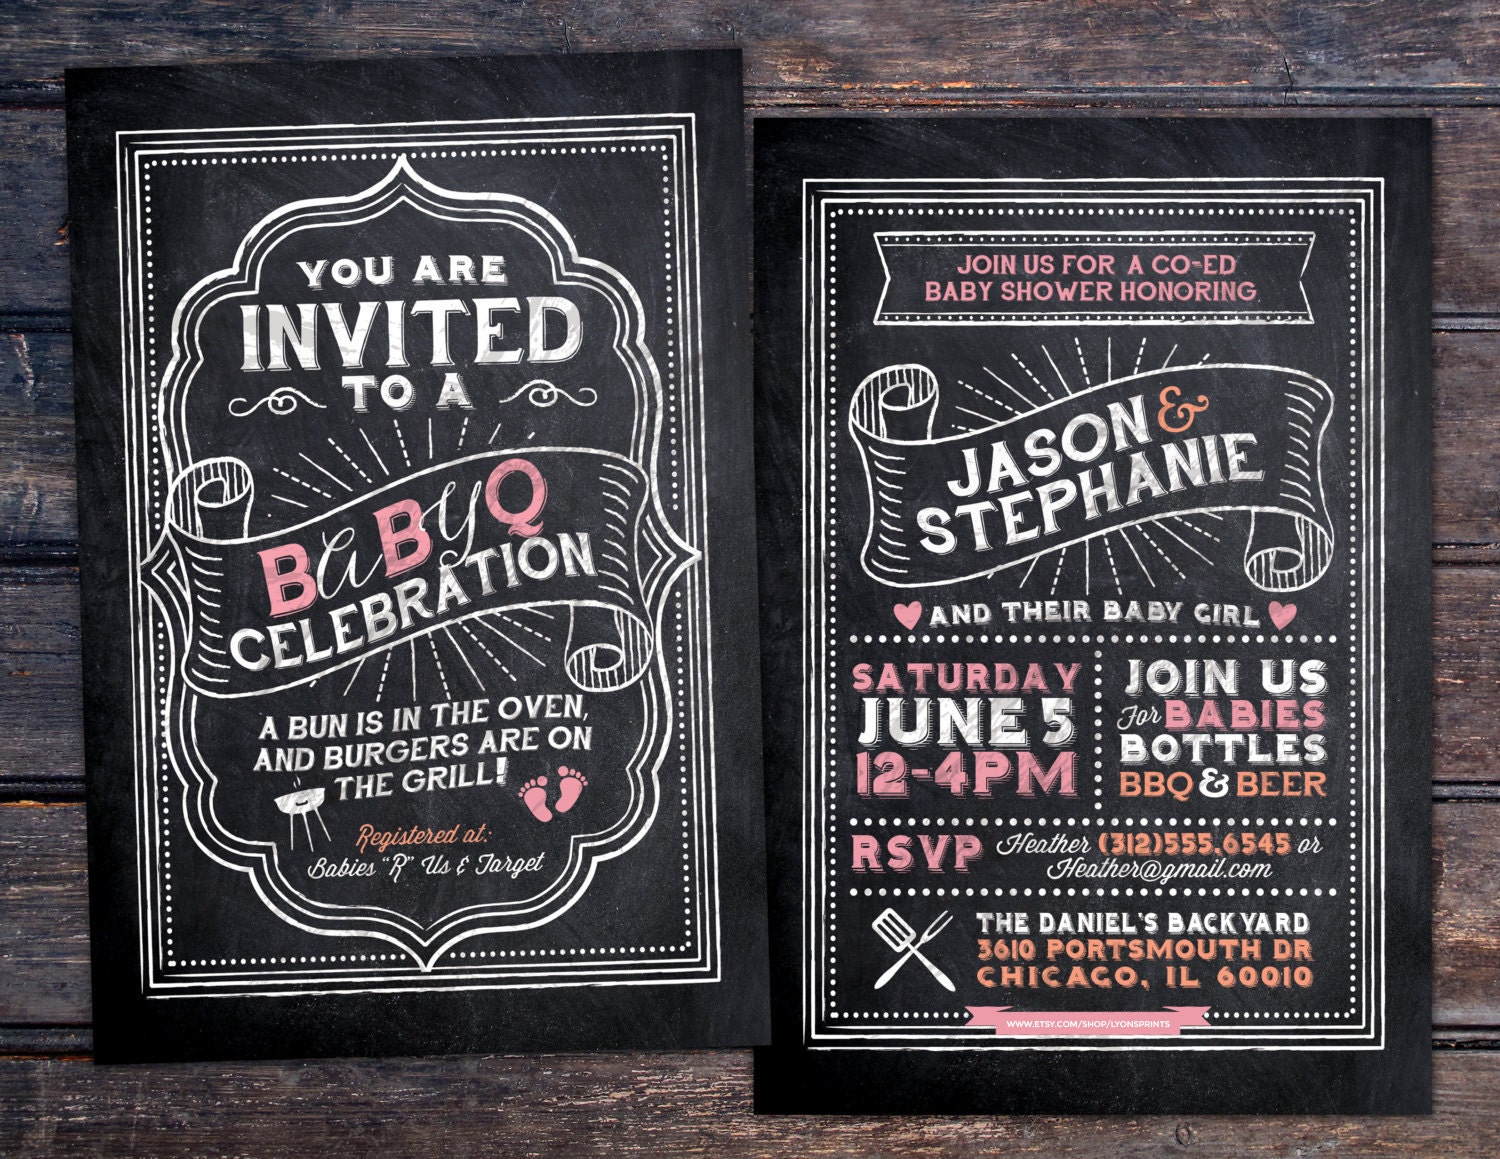 BabyQ chalkboard couples co-ed Baby Shower BBQ invitation - babyq ...